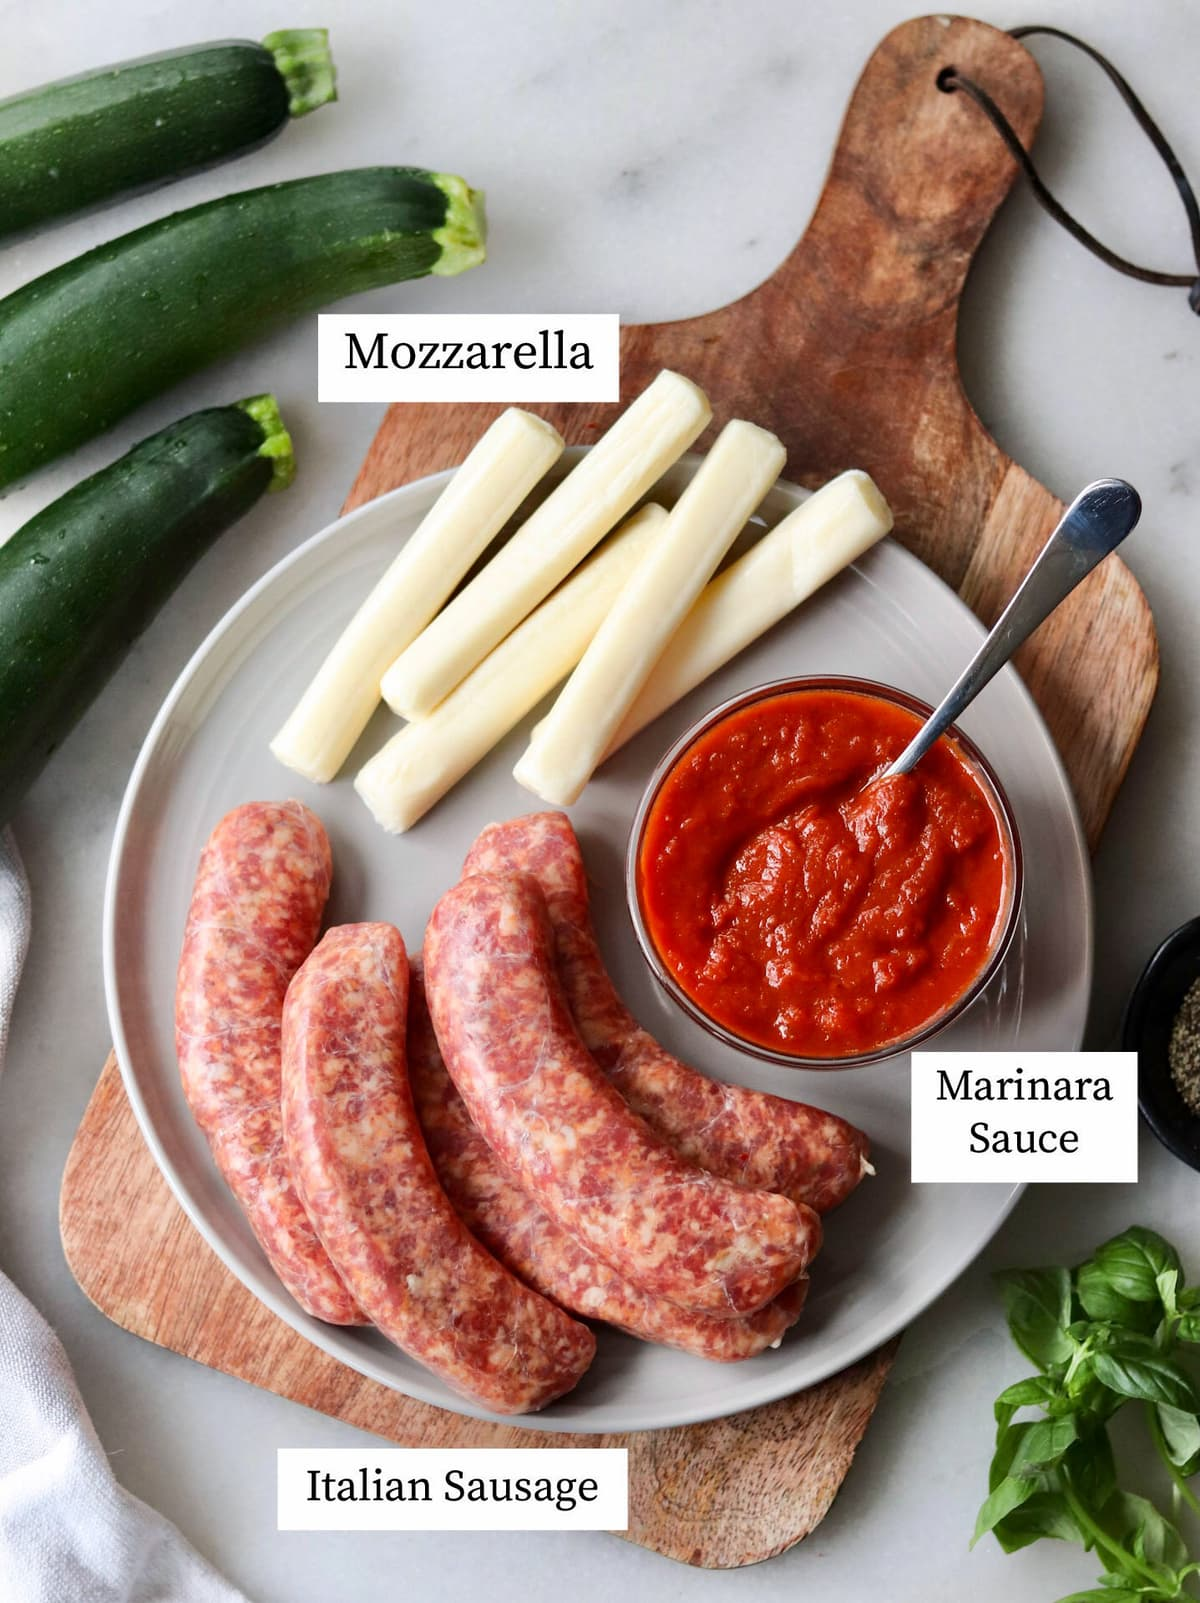 The recipe ingredients laid out on a plate and labeled: mozzarella, Italian sausages, and marinara sauce.